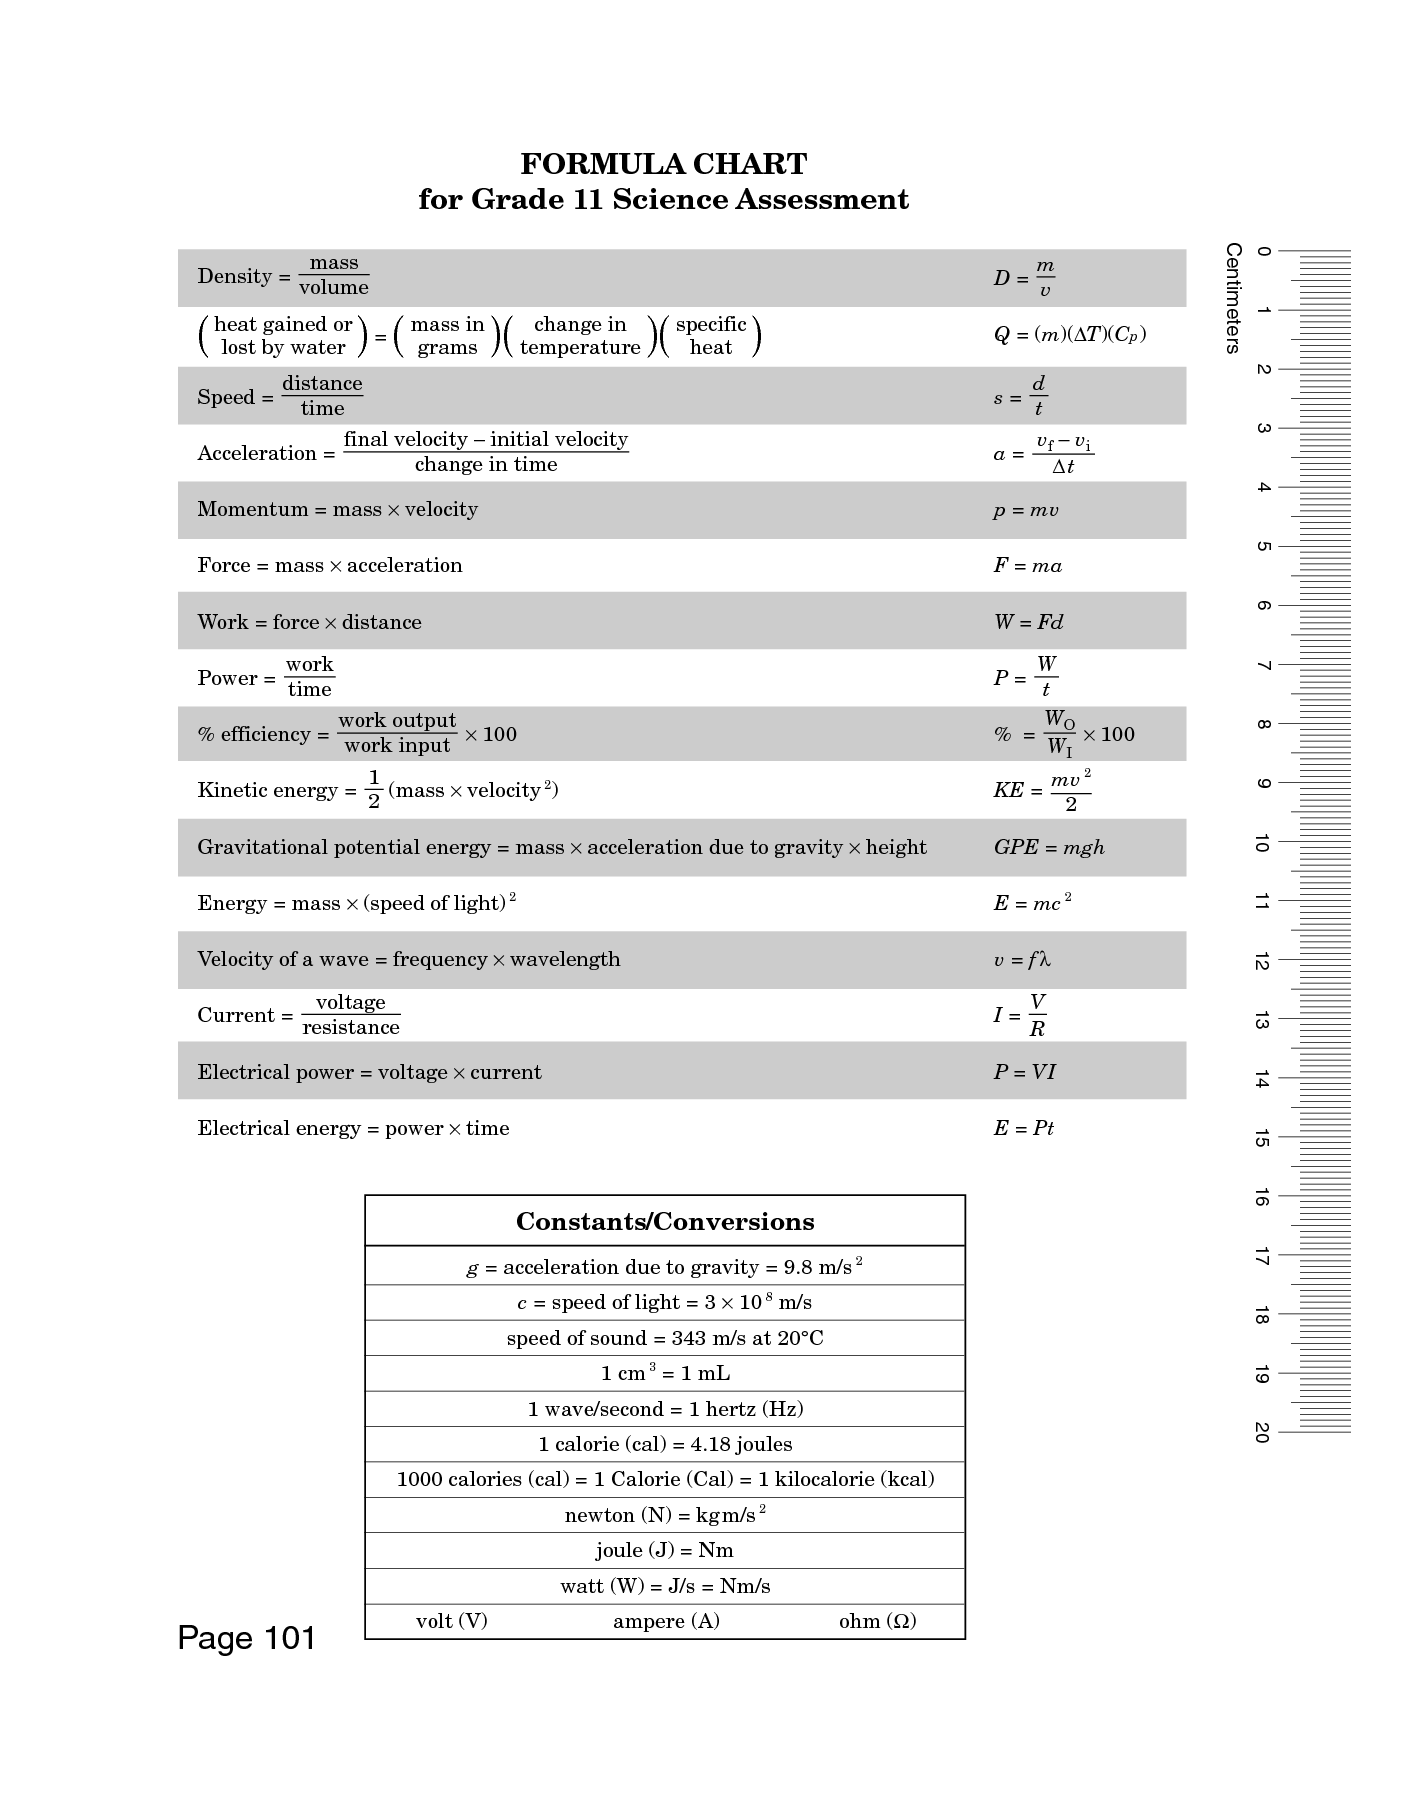 Formula chart for grade 11 science assessment science formula chart for grade 11 science assessment nvjuhfo Image collections